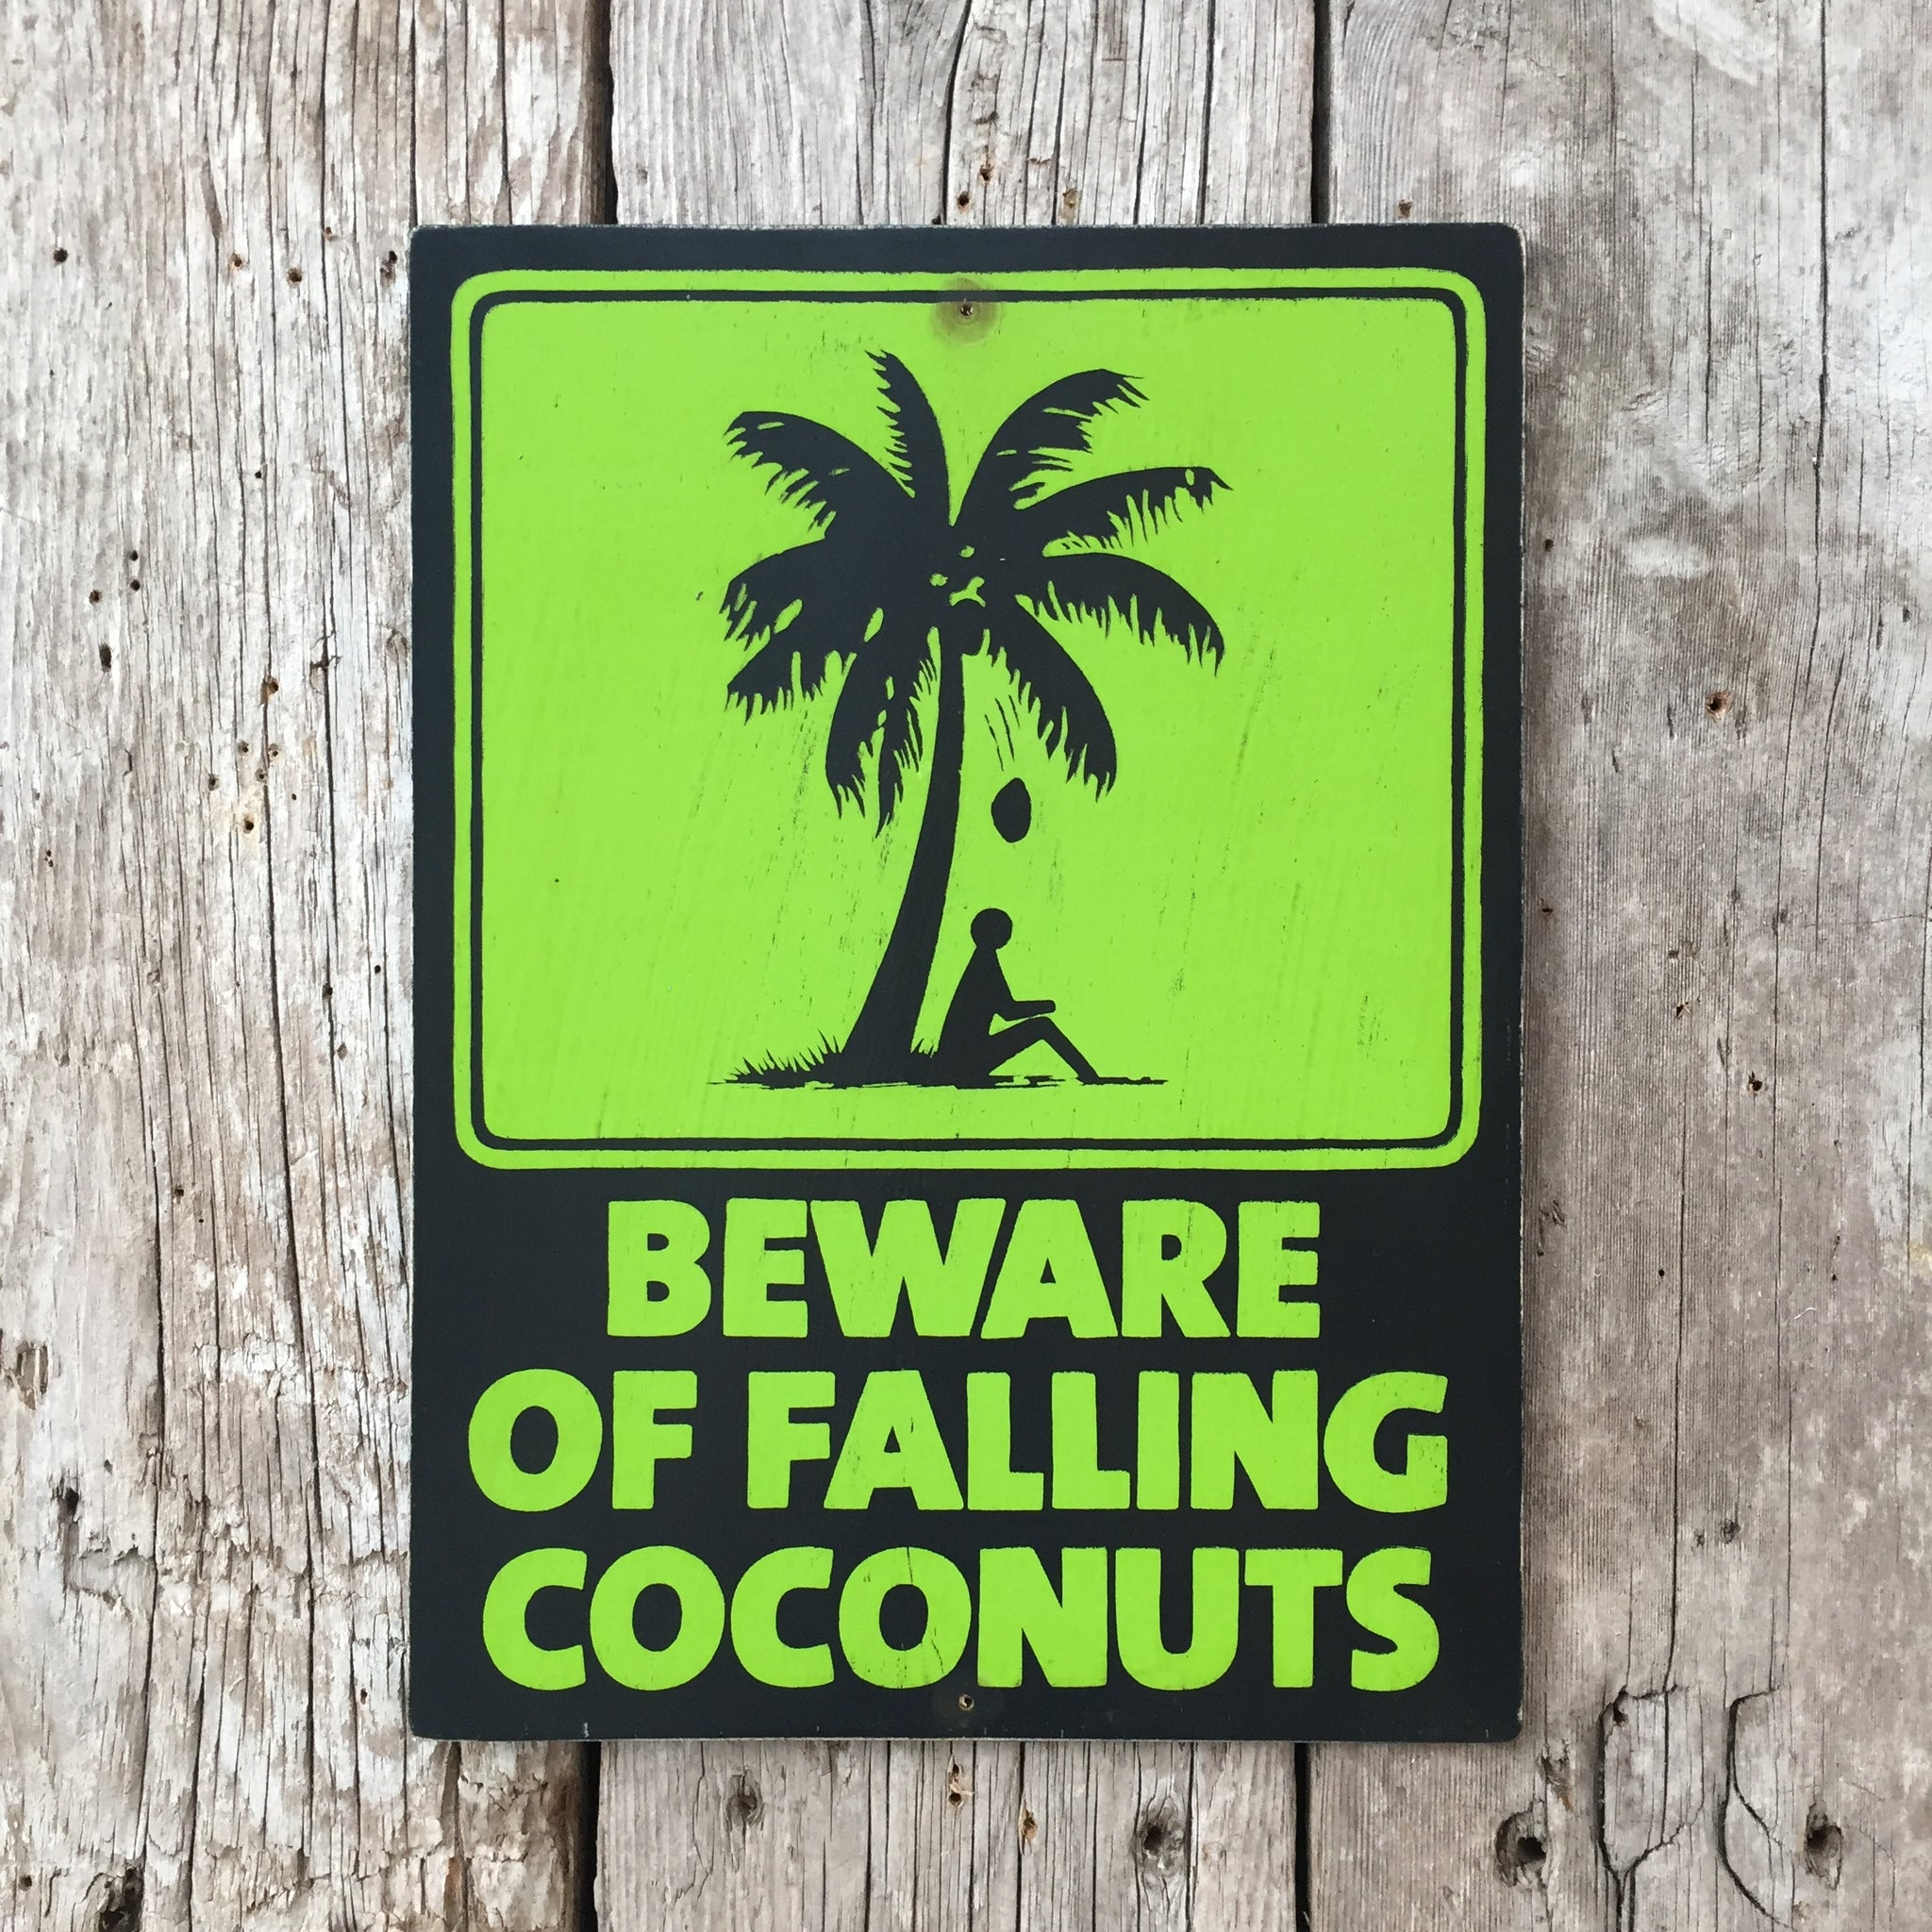 Handmade Vintage Beware Of Falling Coconuts Stickman Warning Sign